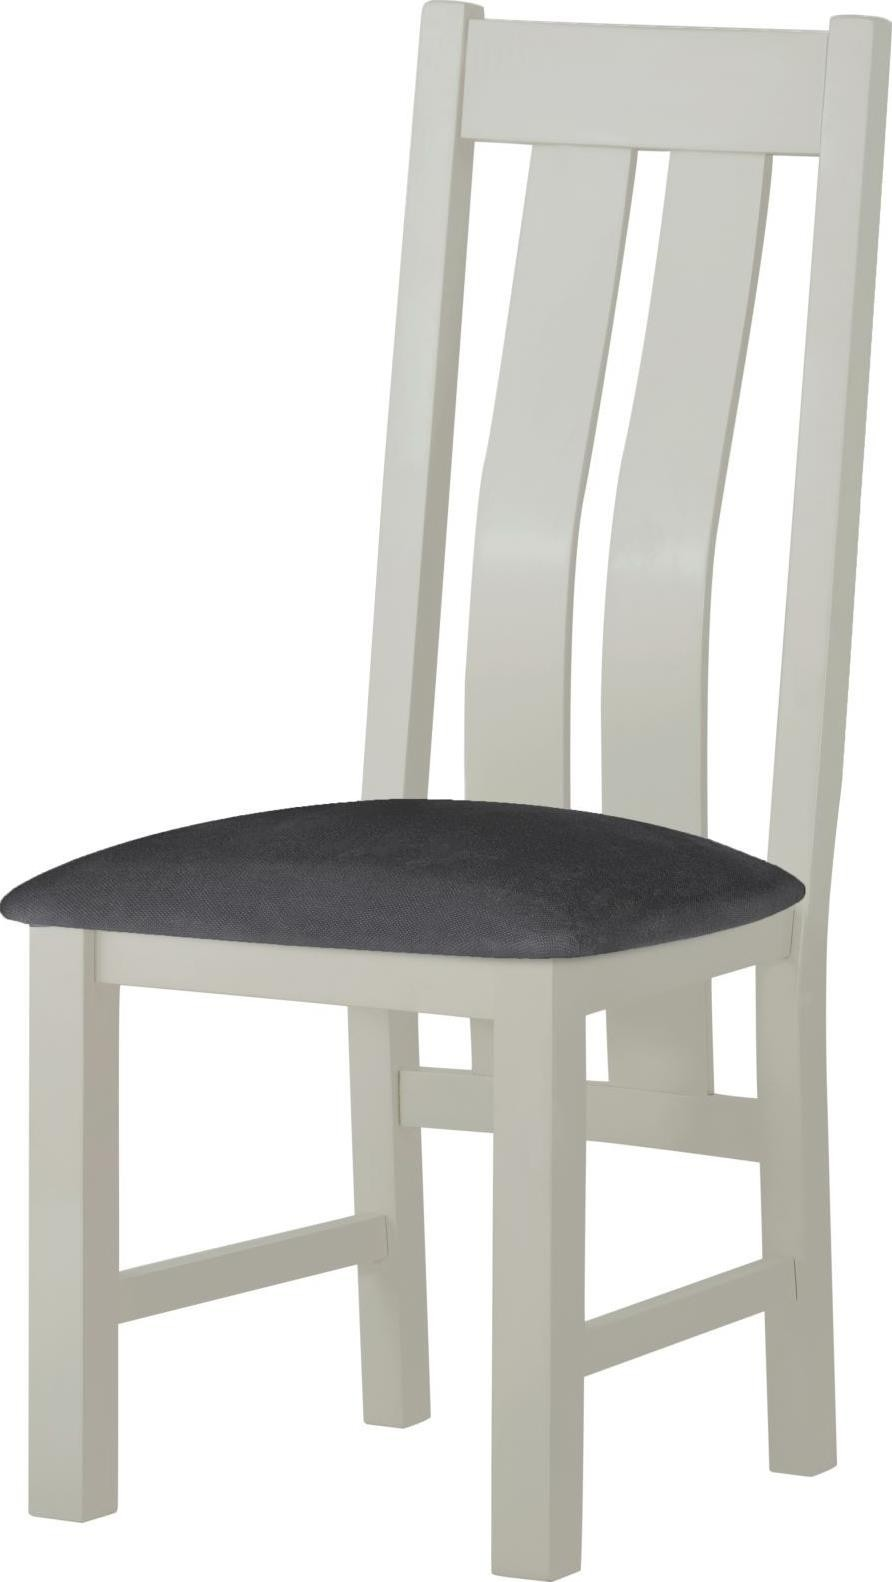 Maine Dining Chair In Stone